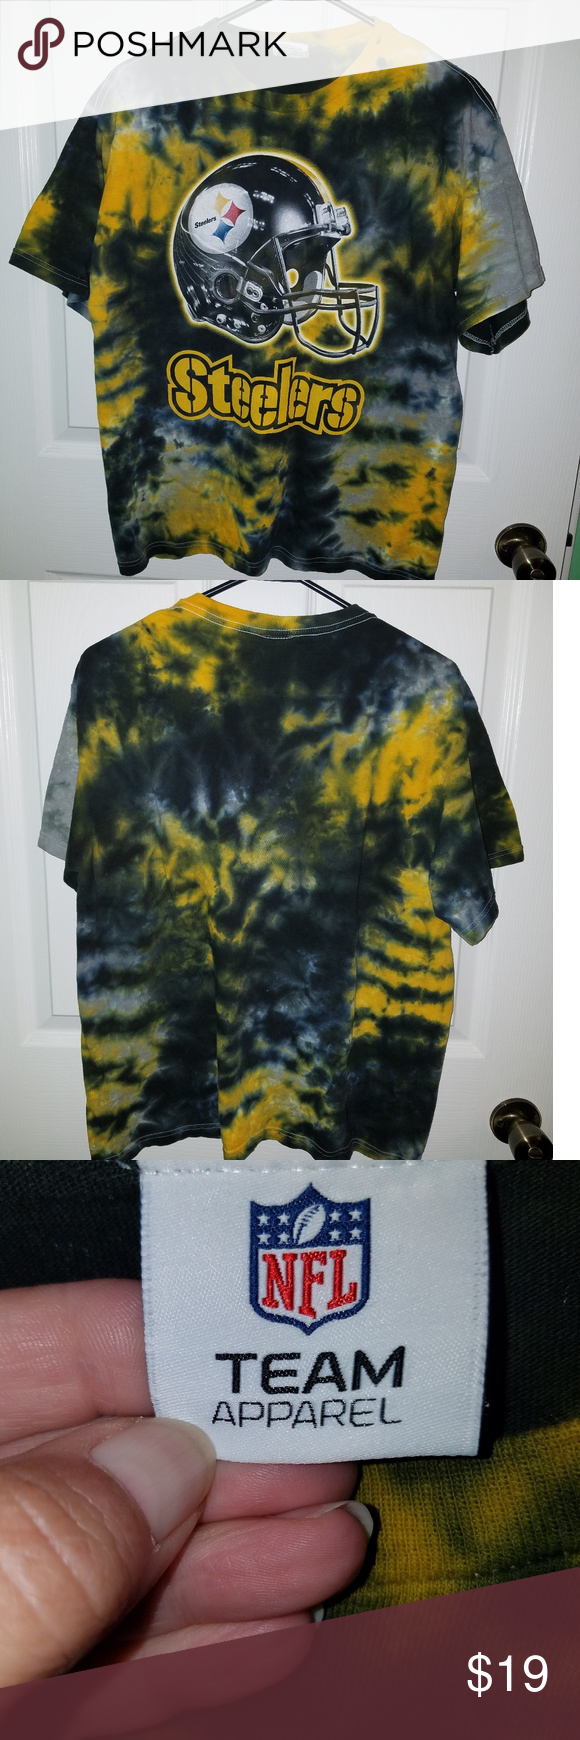 Pittsburgh Steelers Tye-Dyed T-Shirt size Large Pittsburgh Steelers Tye-Dyed  T-Shirt size Large. Excellent used condition no stains or rips or pics. NFL  ... 72b6e5cd1